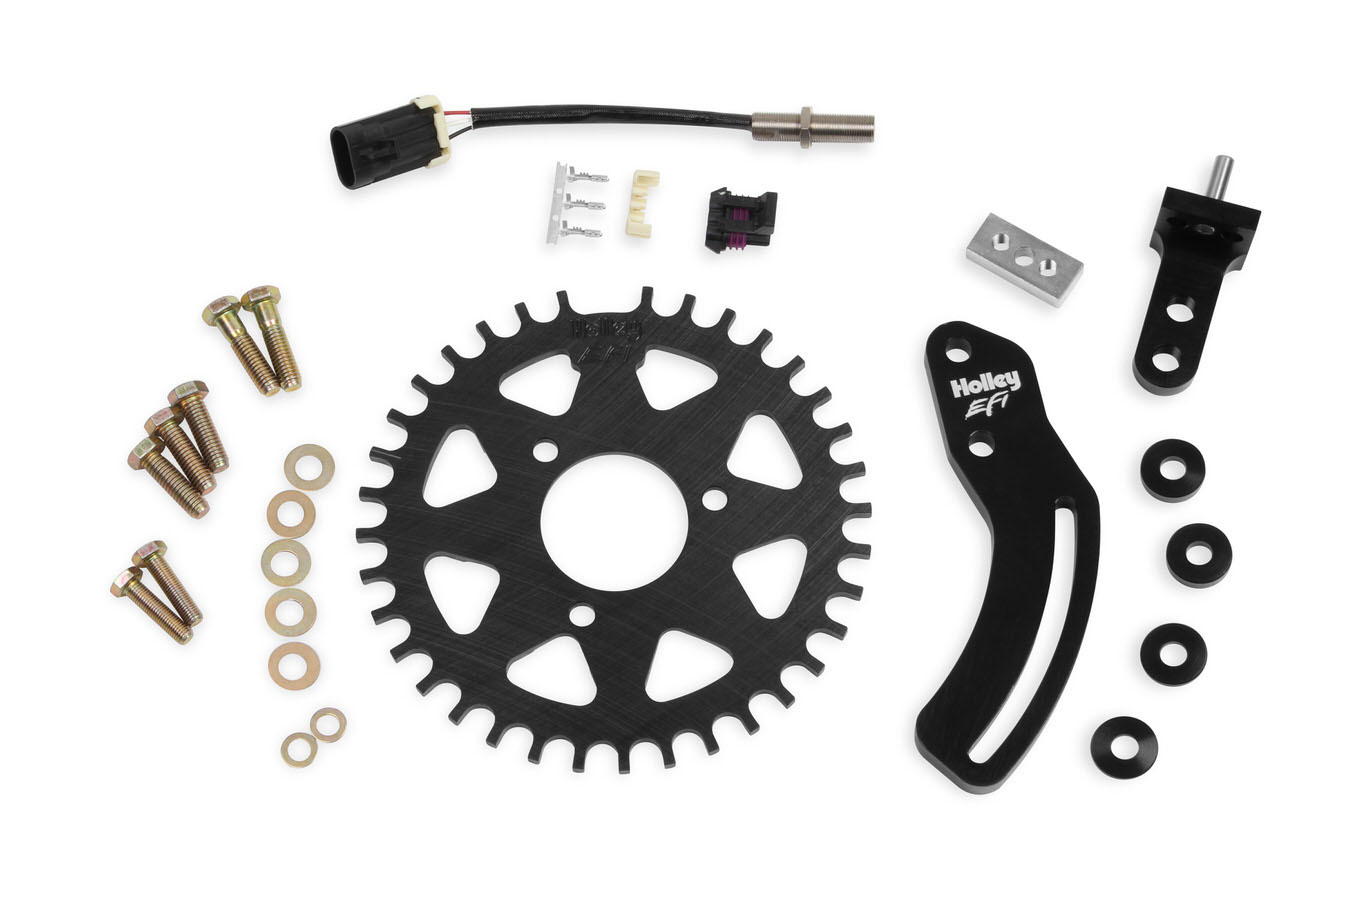 Holley Crank Trigger Kit - SBC 8in 36-1 Tooth